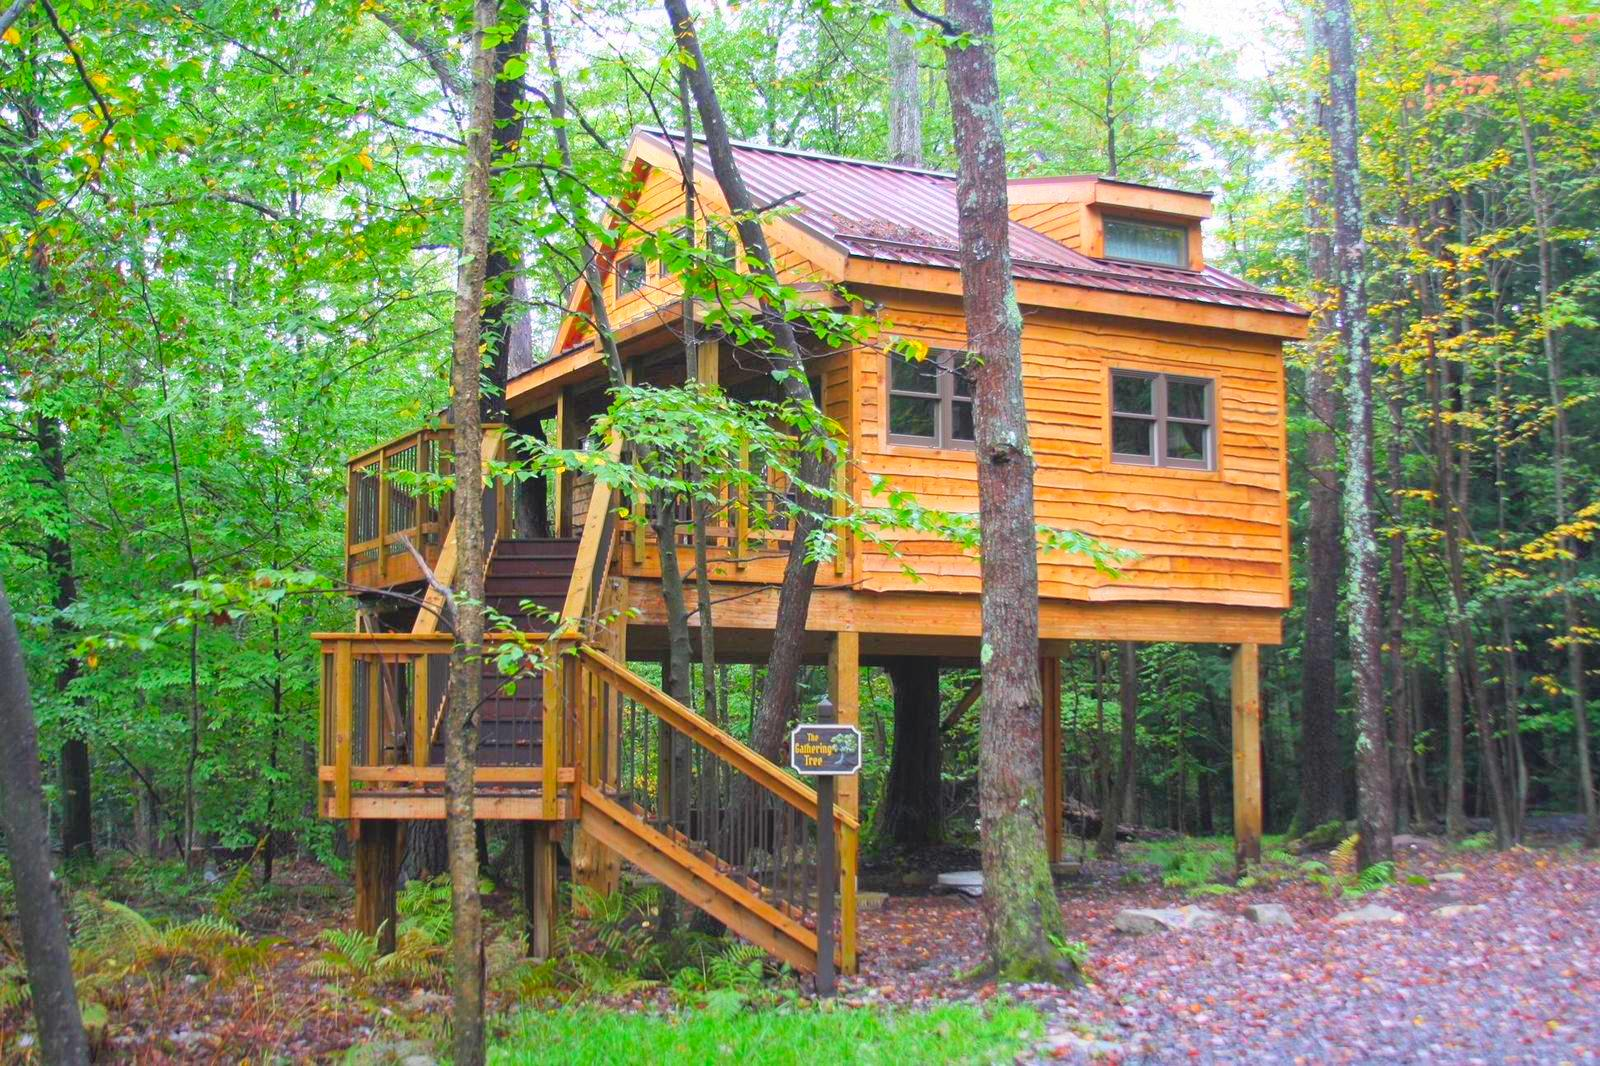 This tranquil and family-friendly tree house is located on an acre of majestic woodlands next to Savage River State Forest in Grantsville, Maryland. With two bedrooms and one bathroom, the tree house can accommodate up to six guests. { }(Image: Courtesy Glamping Hub)